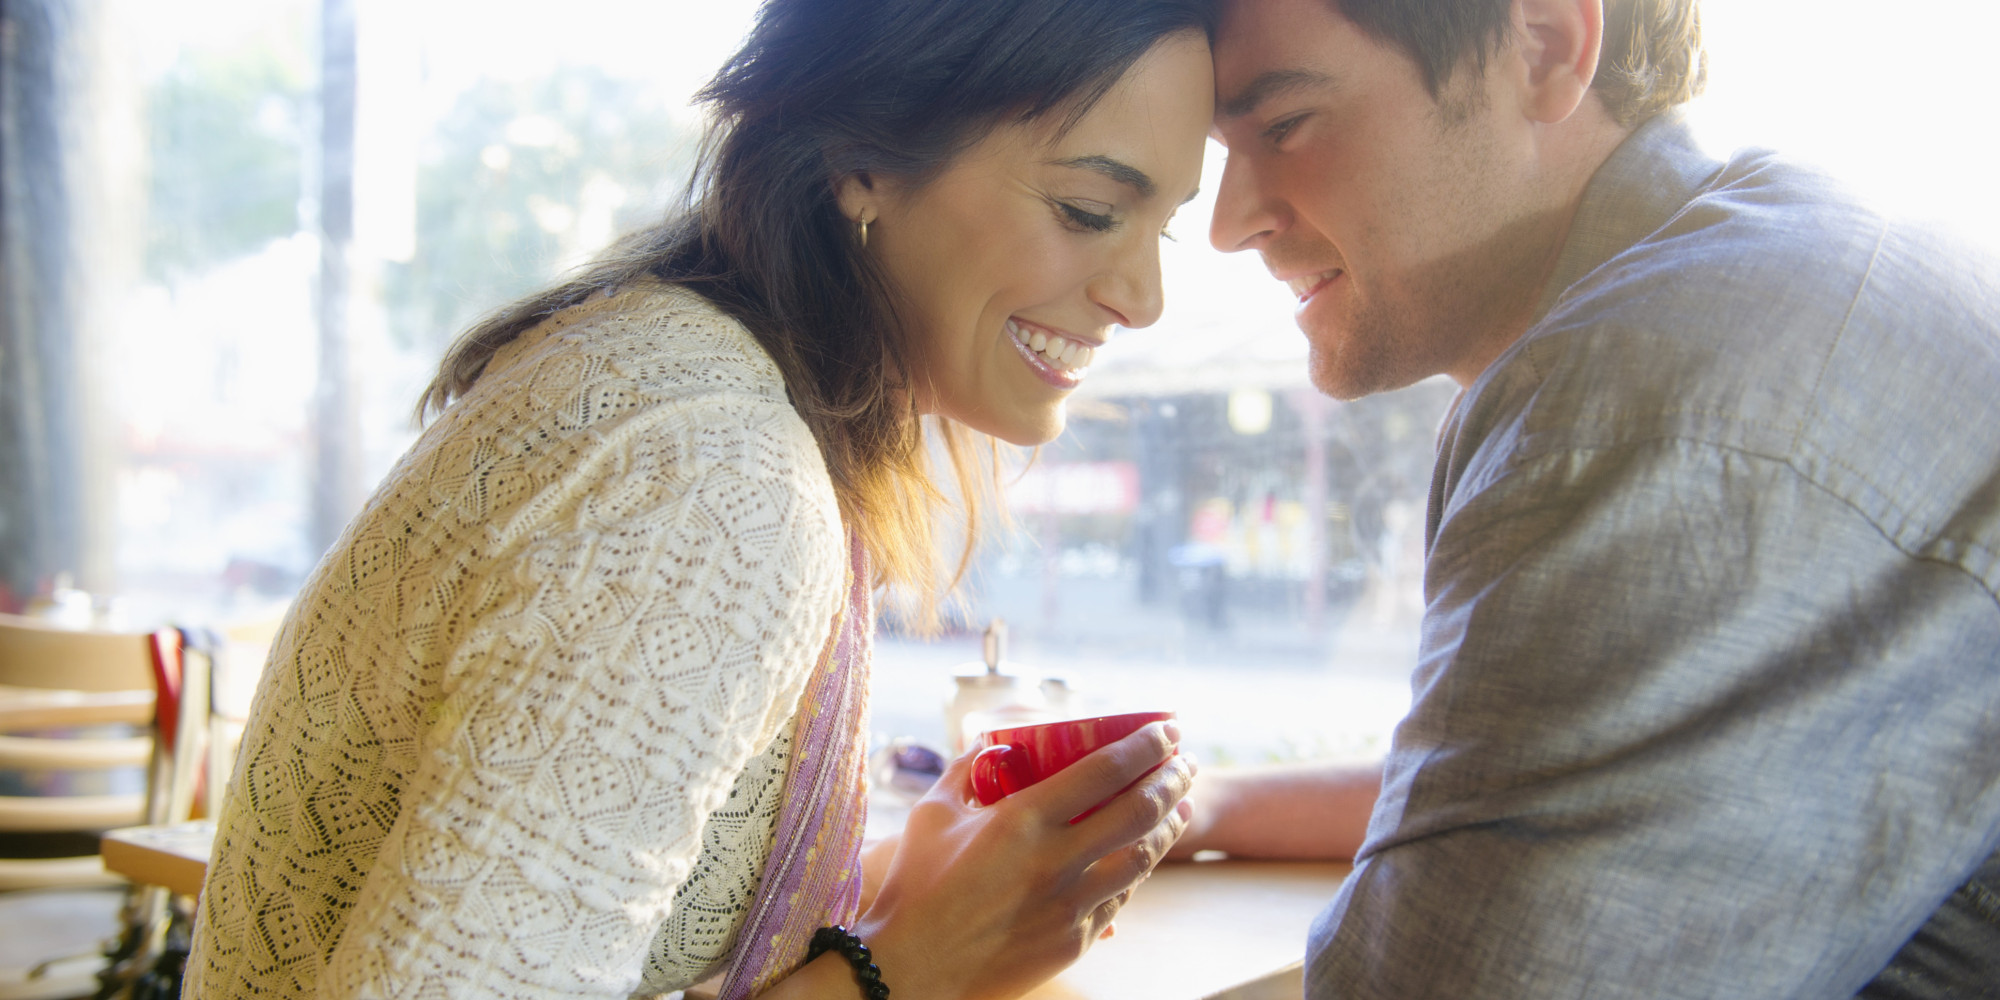 """married couples dating others 50 date ideas for couples for those of you who feel stuck in the """"dating rut"""" here are some helping others can actually be a great way to spend time."""